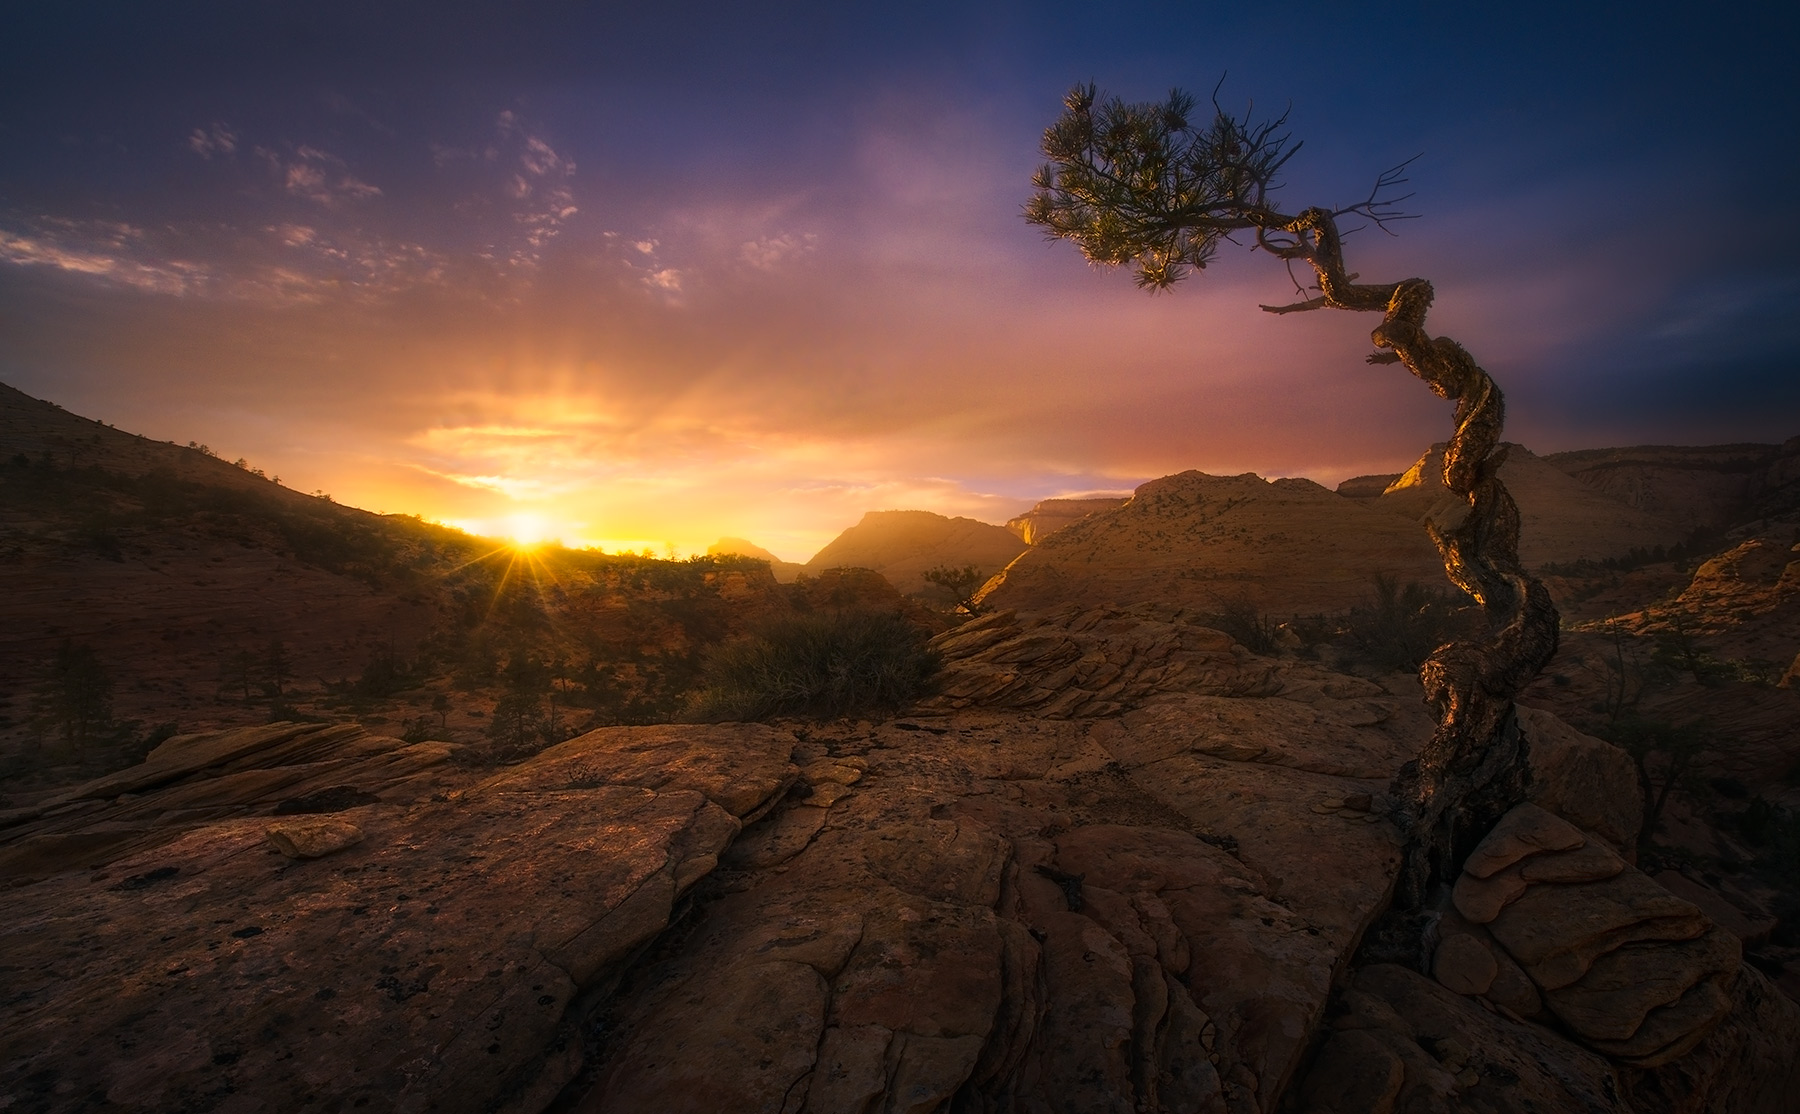 A lonely tree on the plateau of sandstone catches the last rays.